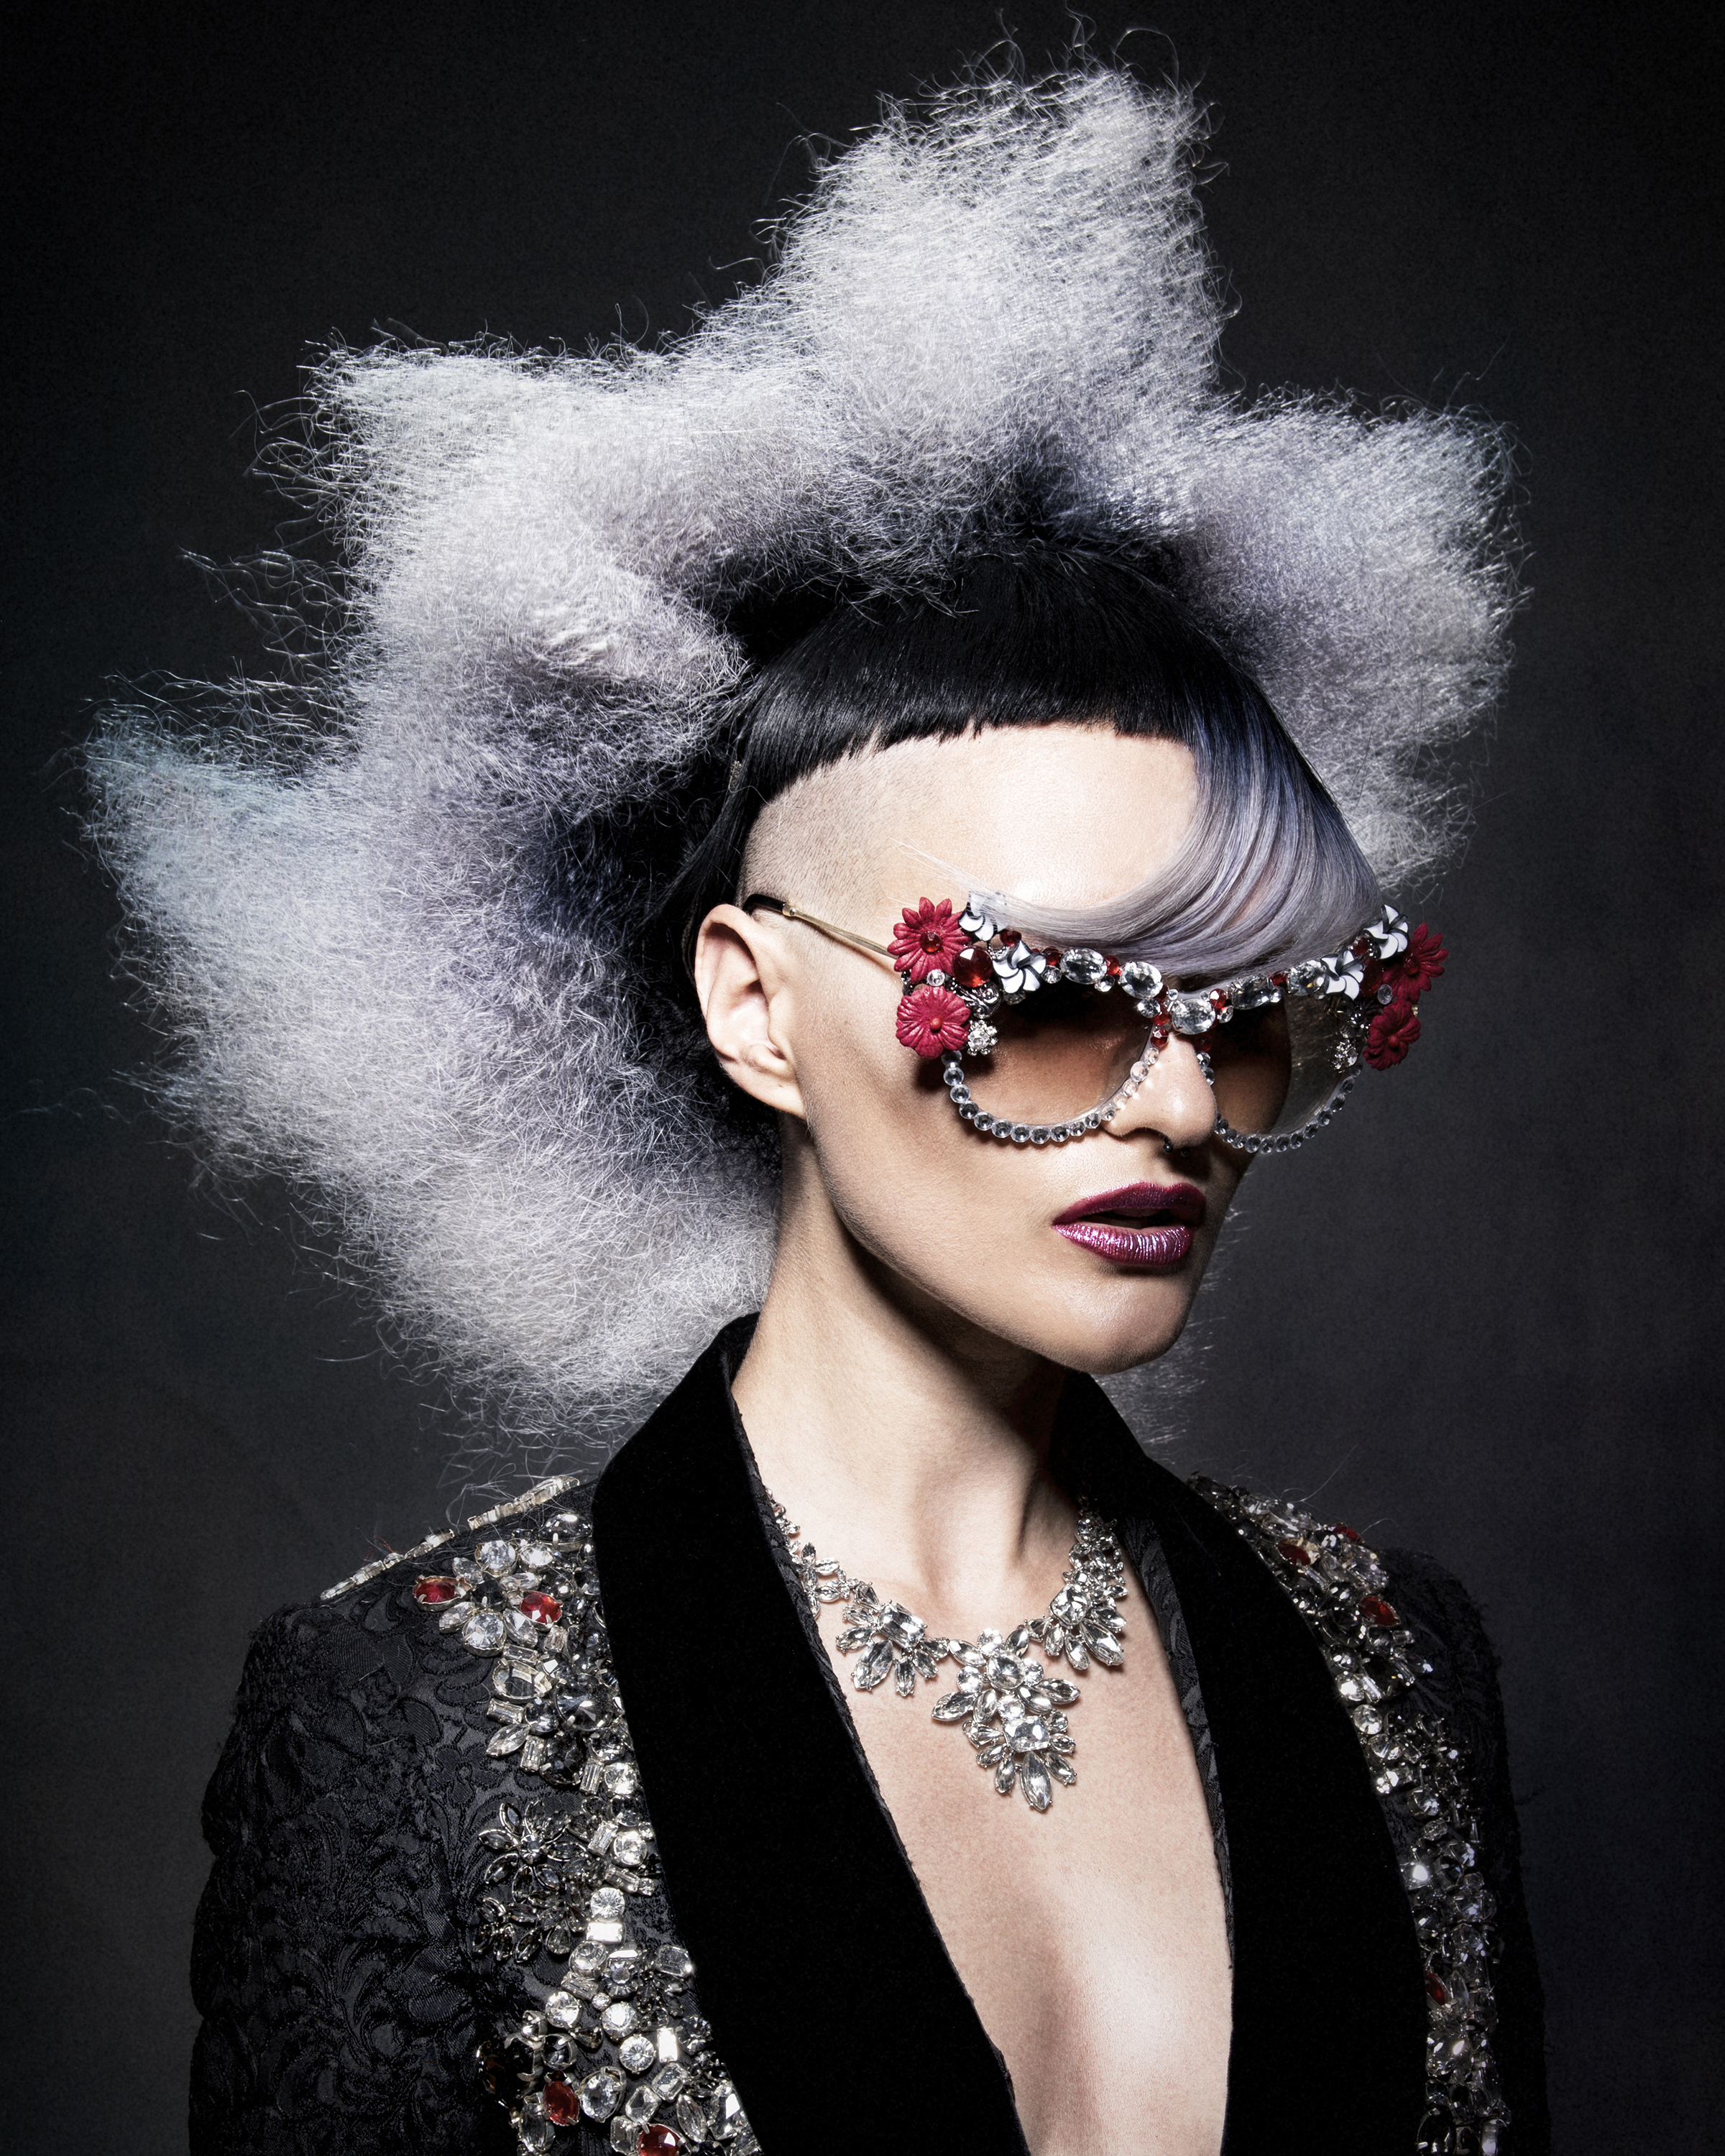 2019 NAHA Finalists: Hairstylist of the Year